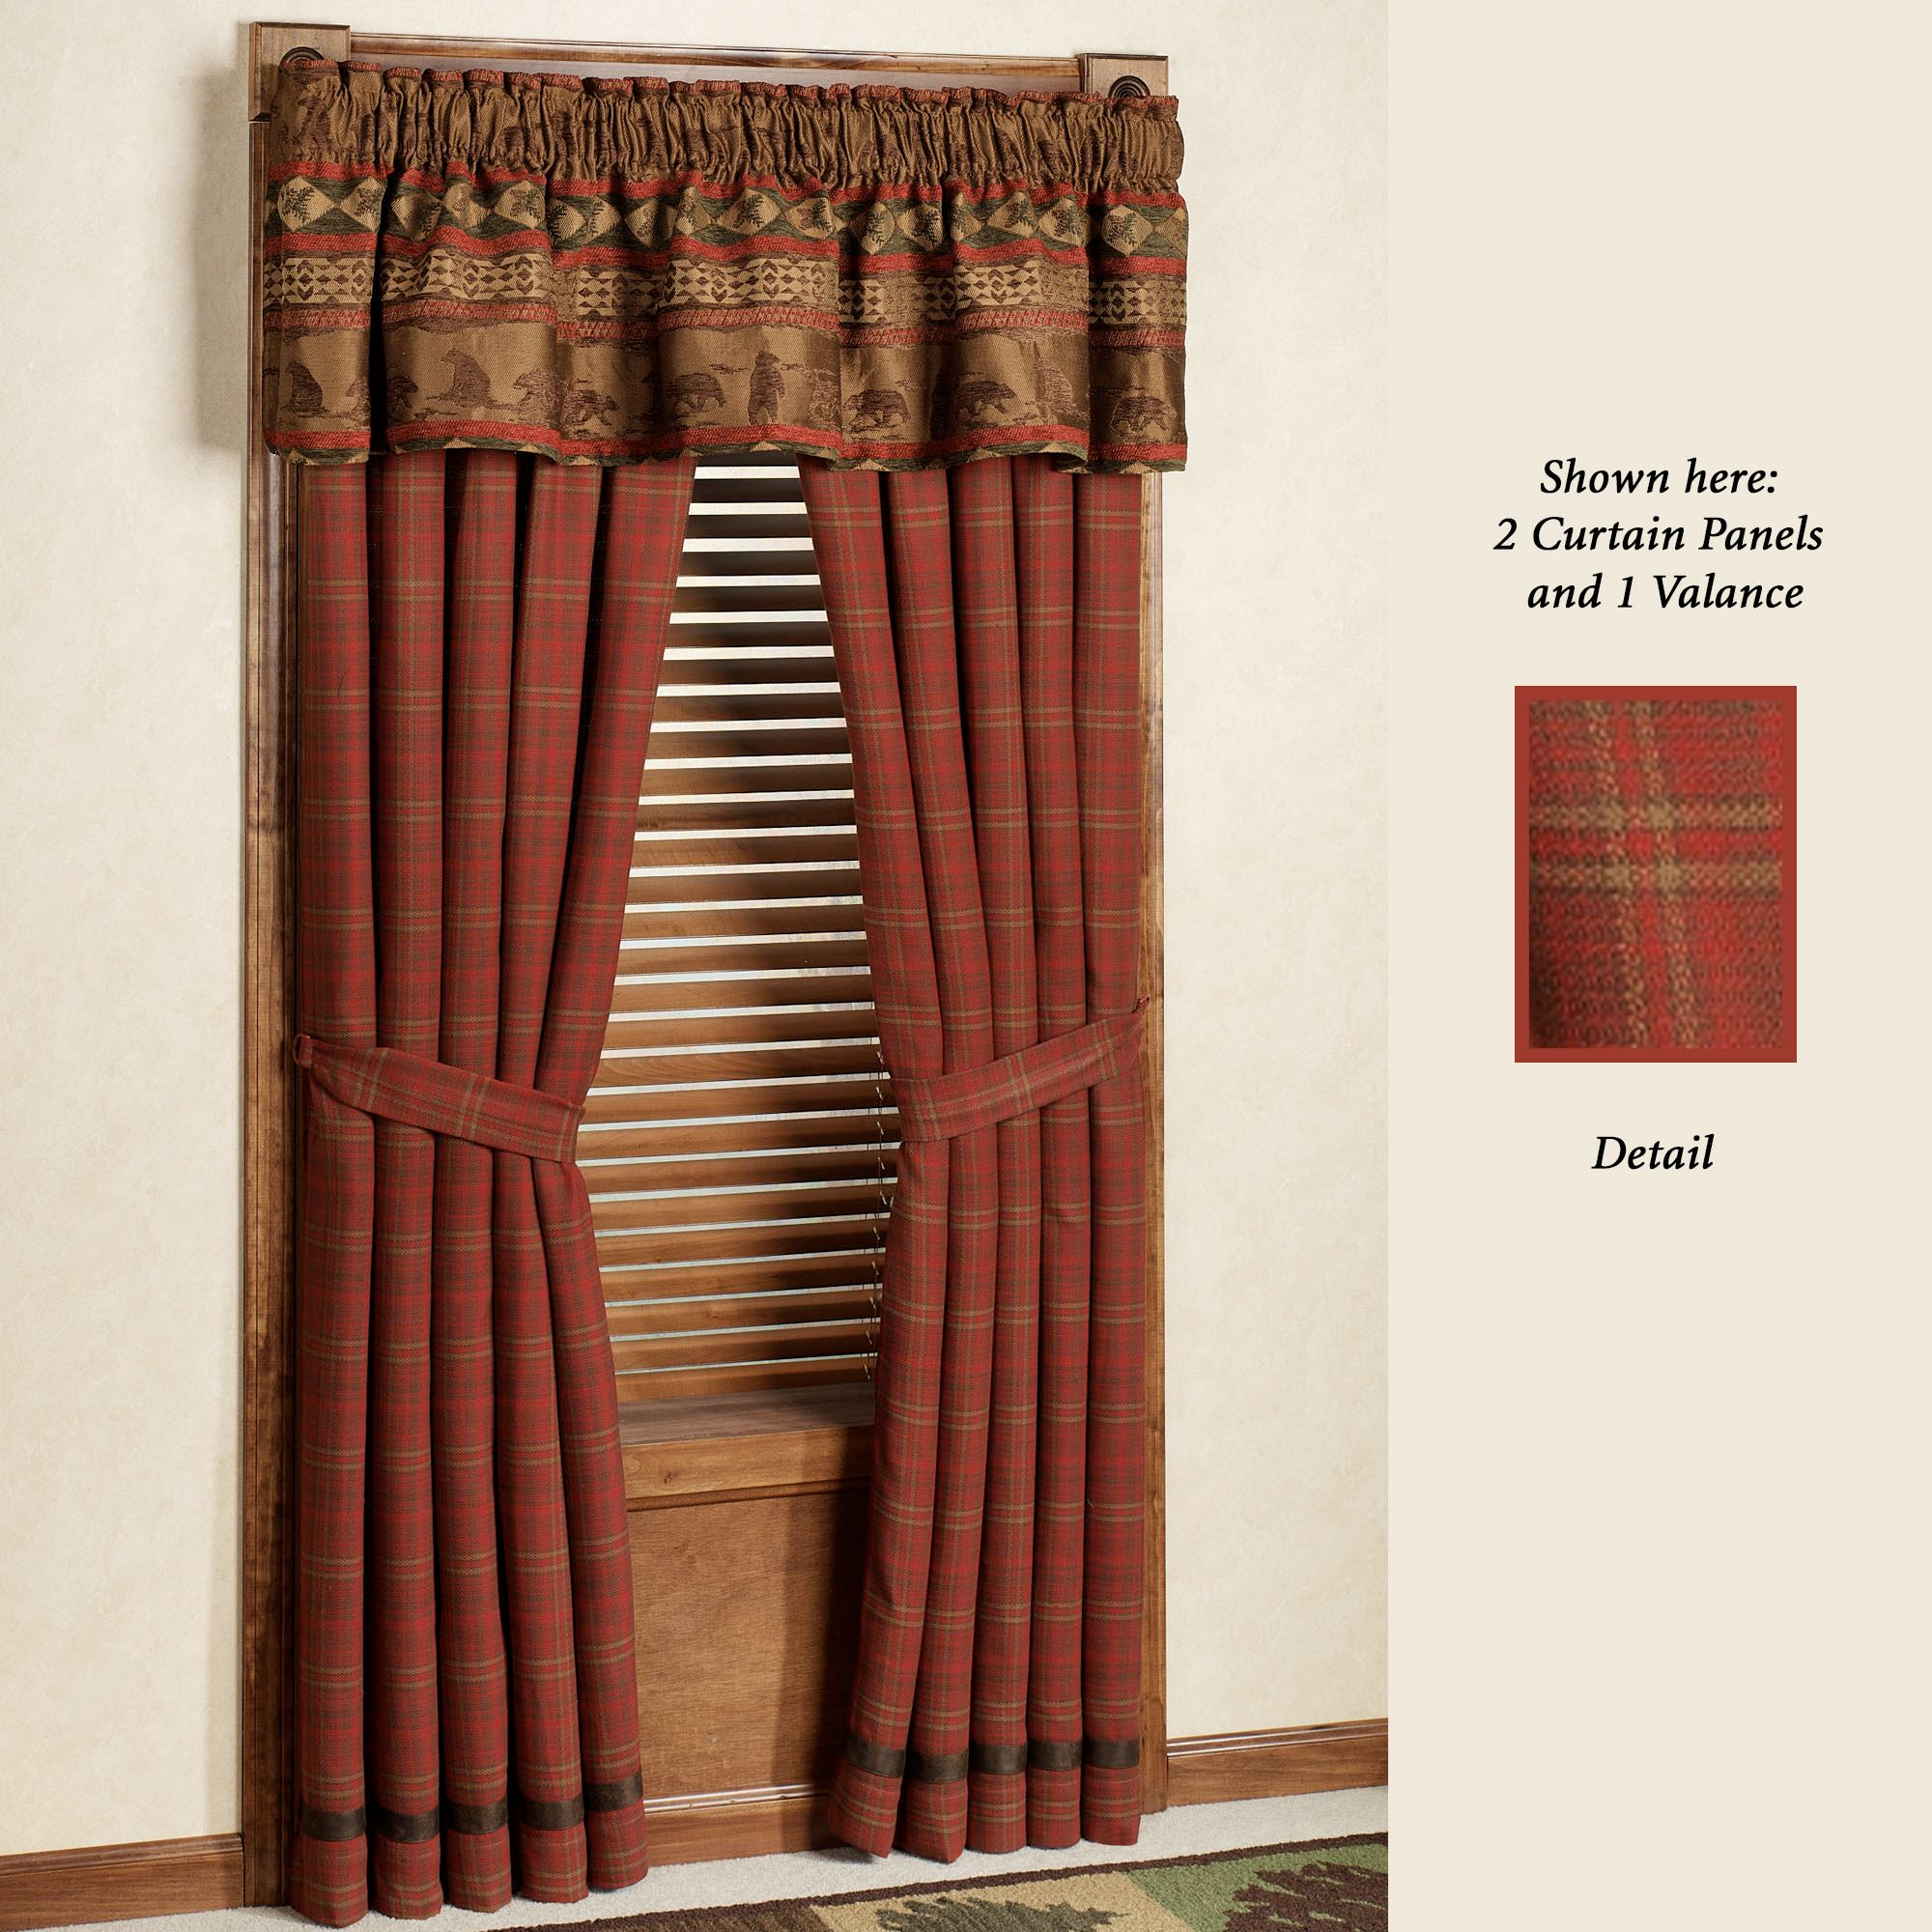 penney jc jcpenney curtains drapes uncommon tags and penneys valance jcpennycurtains window tag valances pe treatments kitchen jcp favorite short draperies curtain